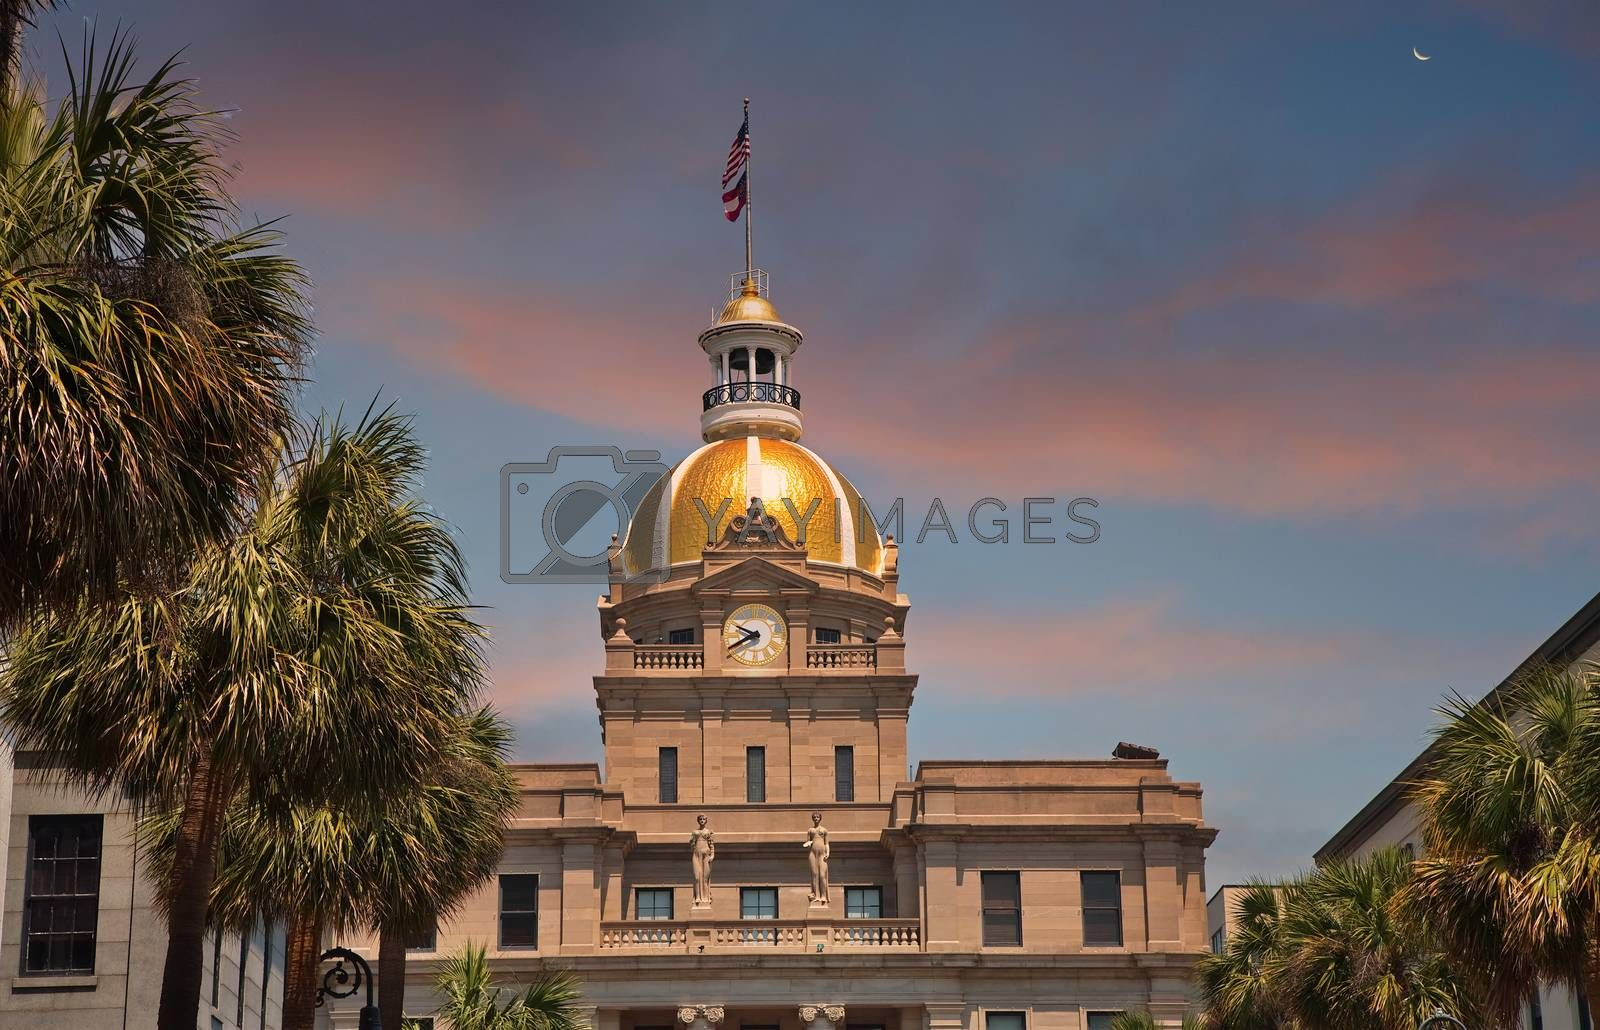 The famous gold domed city hall in Savannah, Georgia